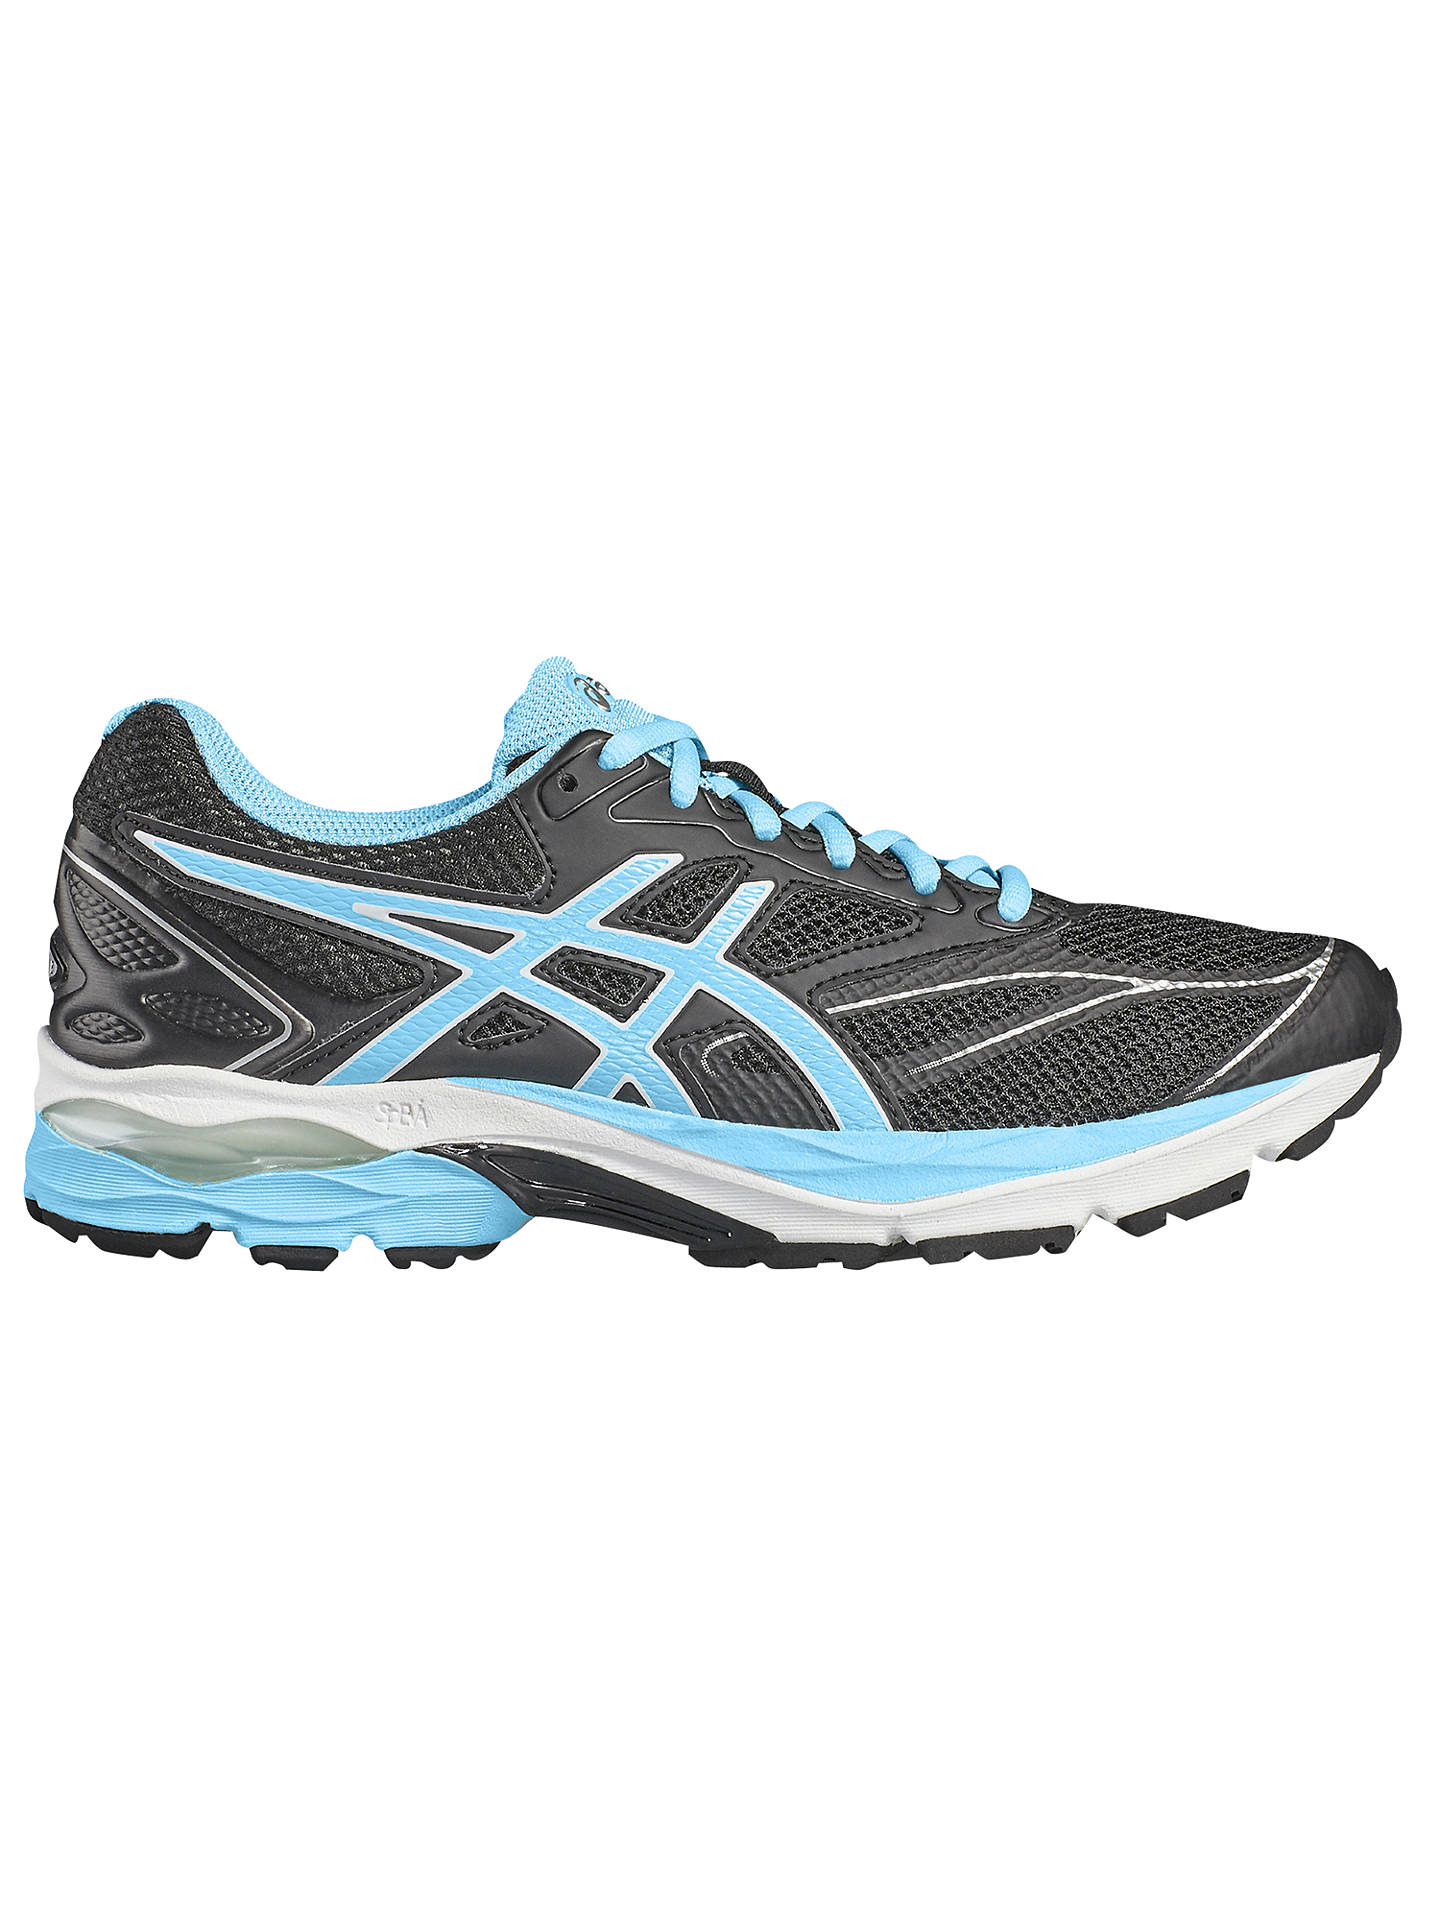 66ce31acf Buy Asics GEL-PULSE 8 Women's Running Shoes, Black/Blue, 4 Online ...